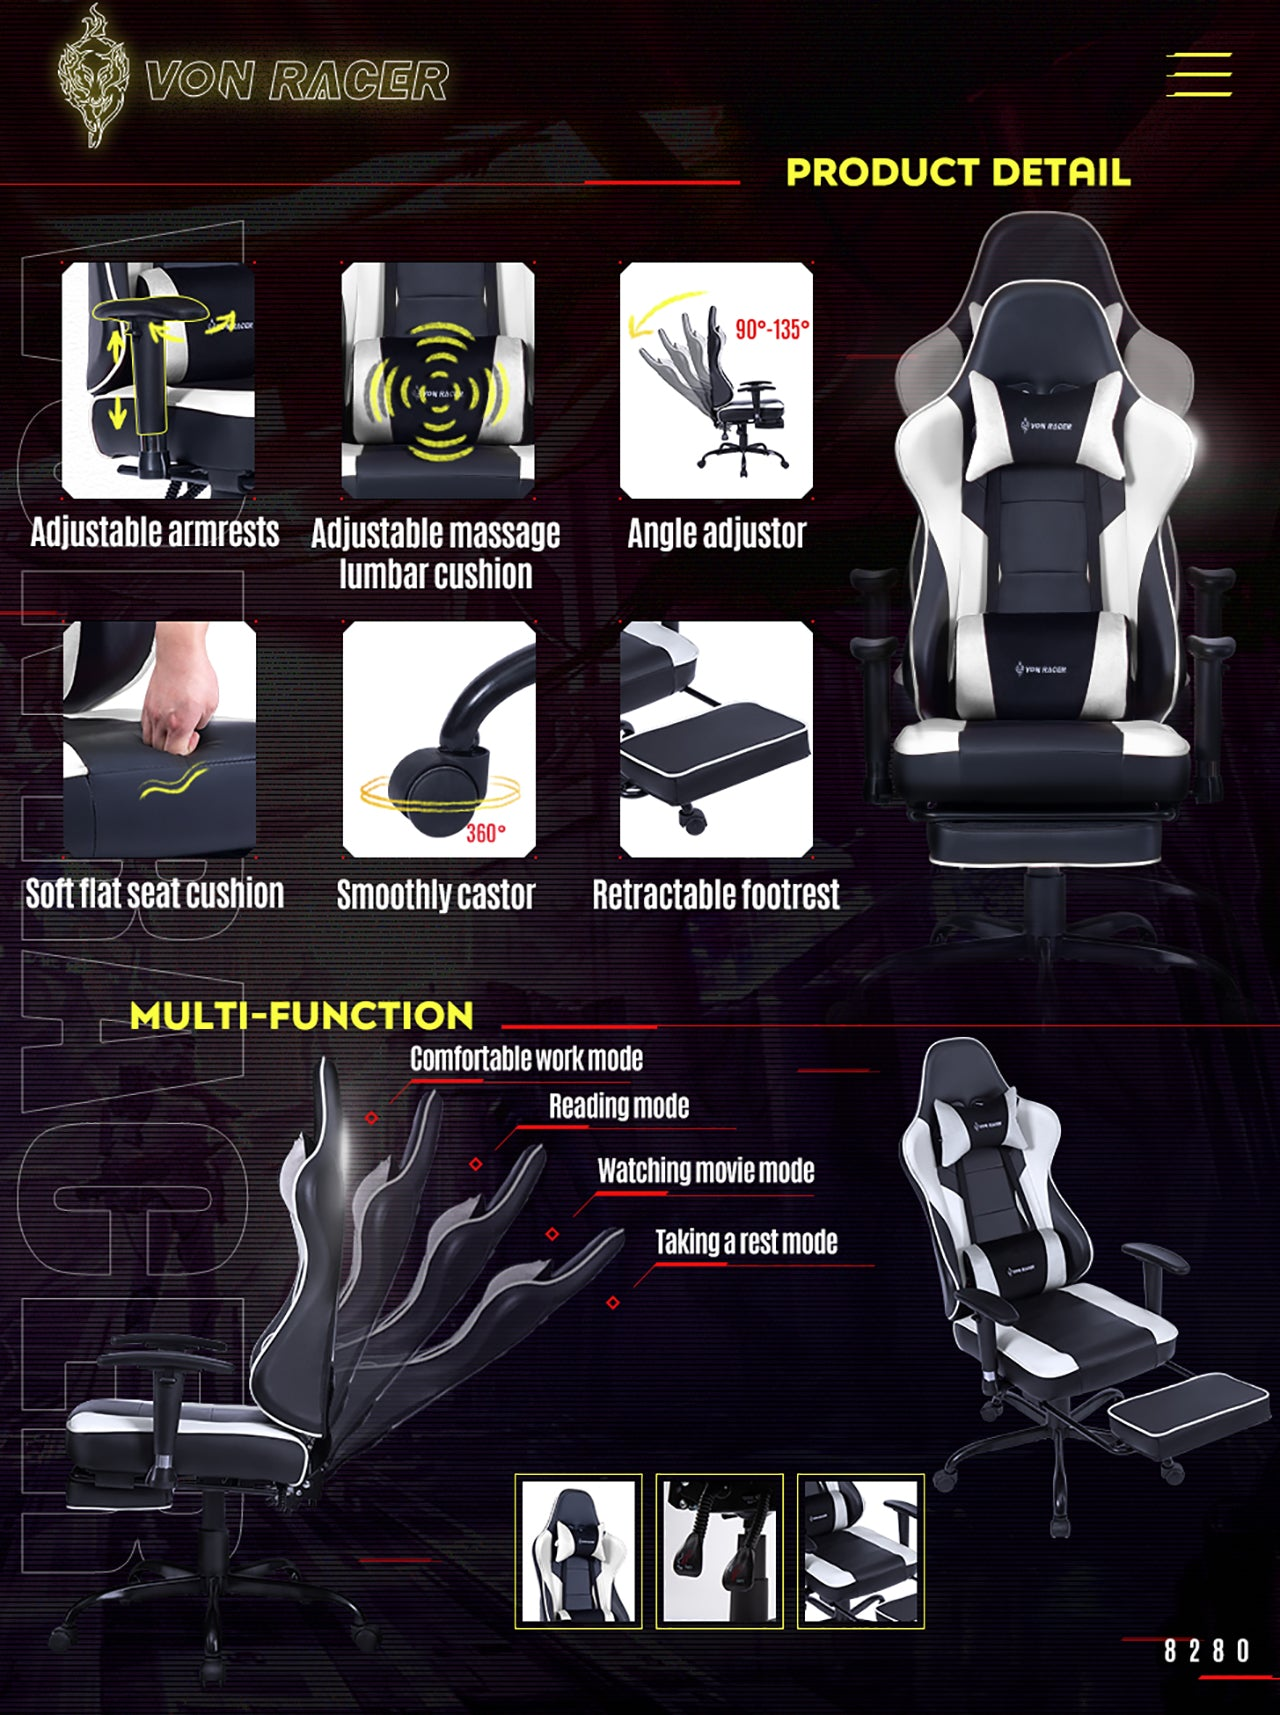 VON RACER ERGONOMIC GAMING CHAIR 8280 WHITE FEATURES